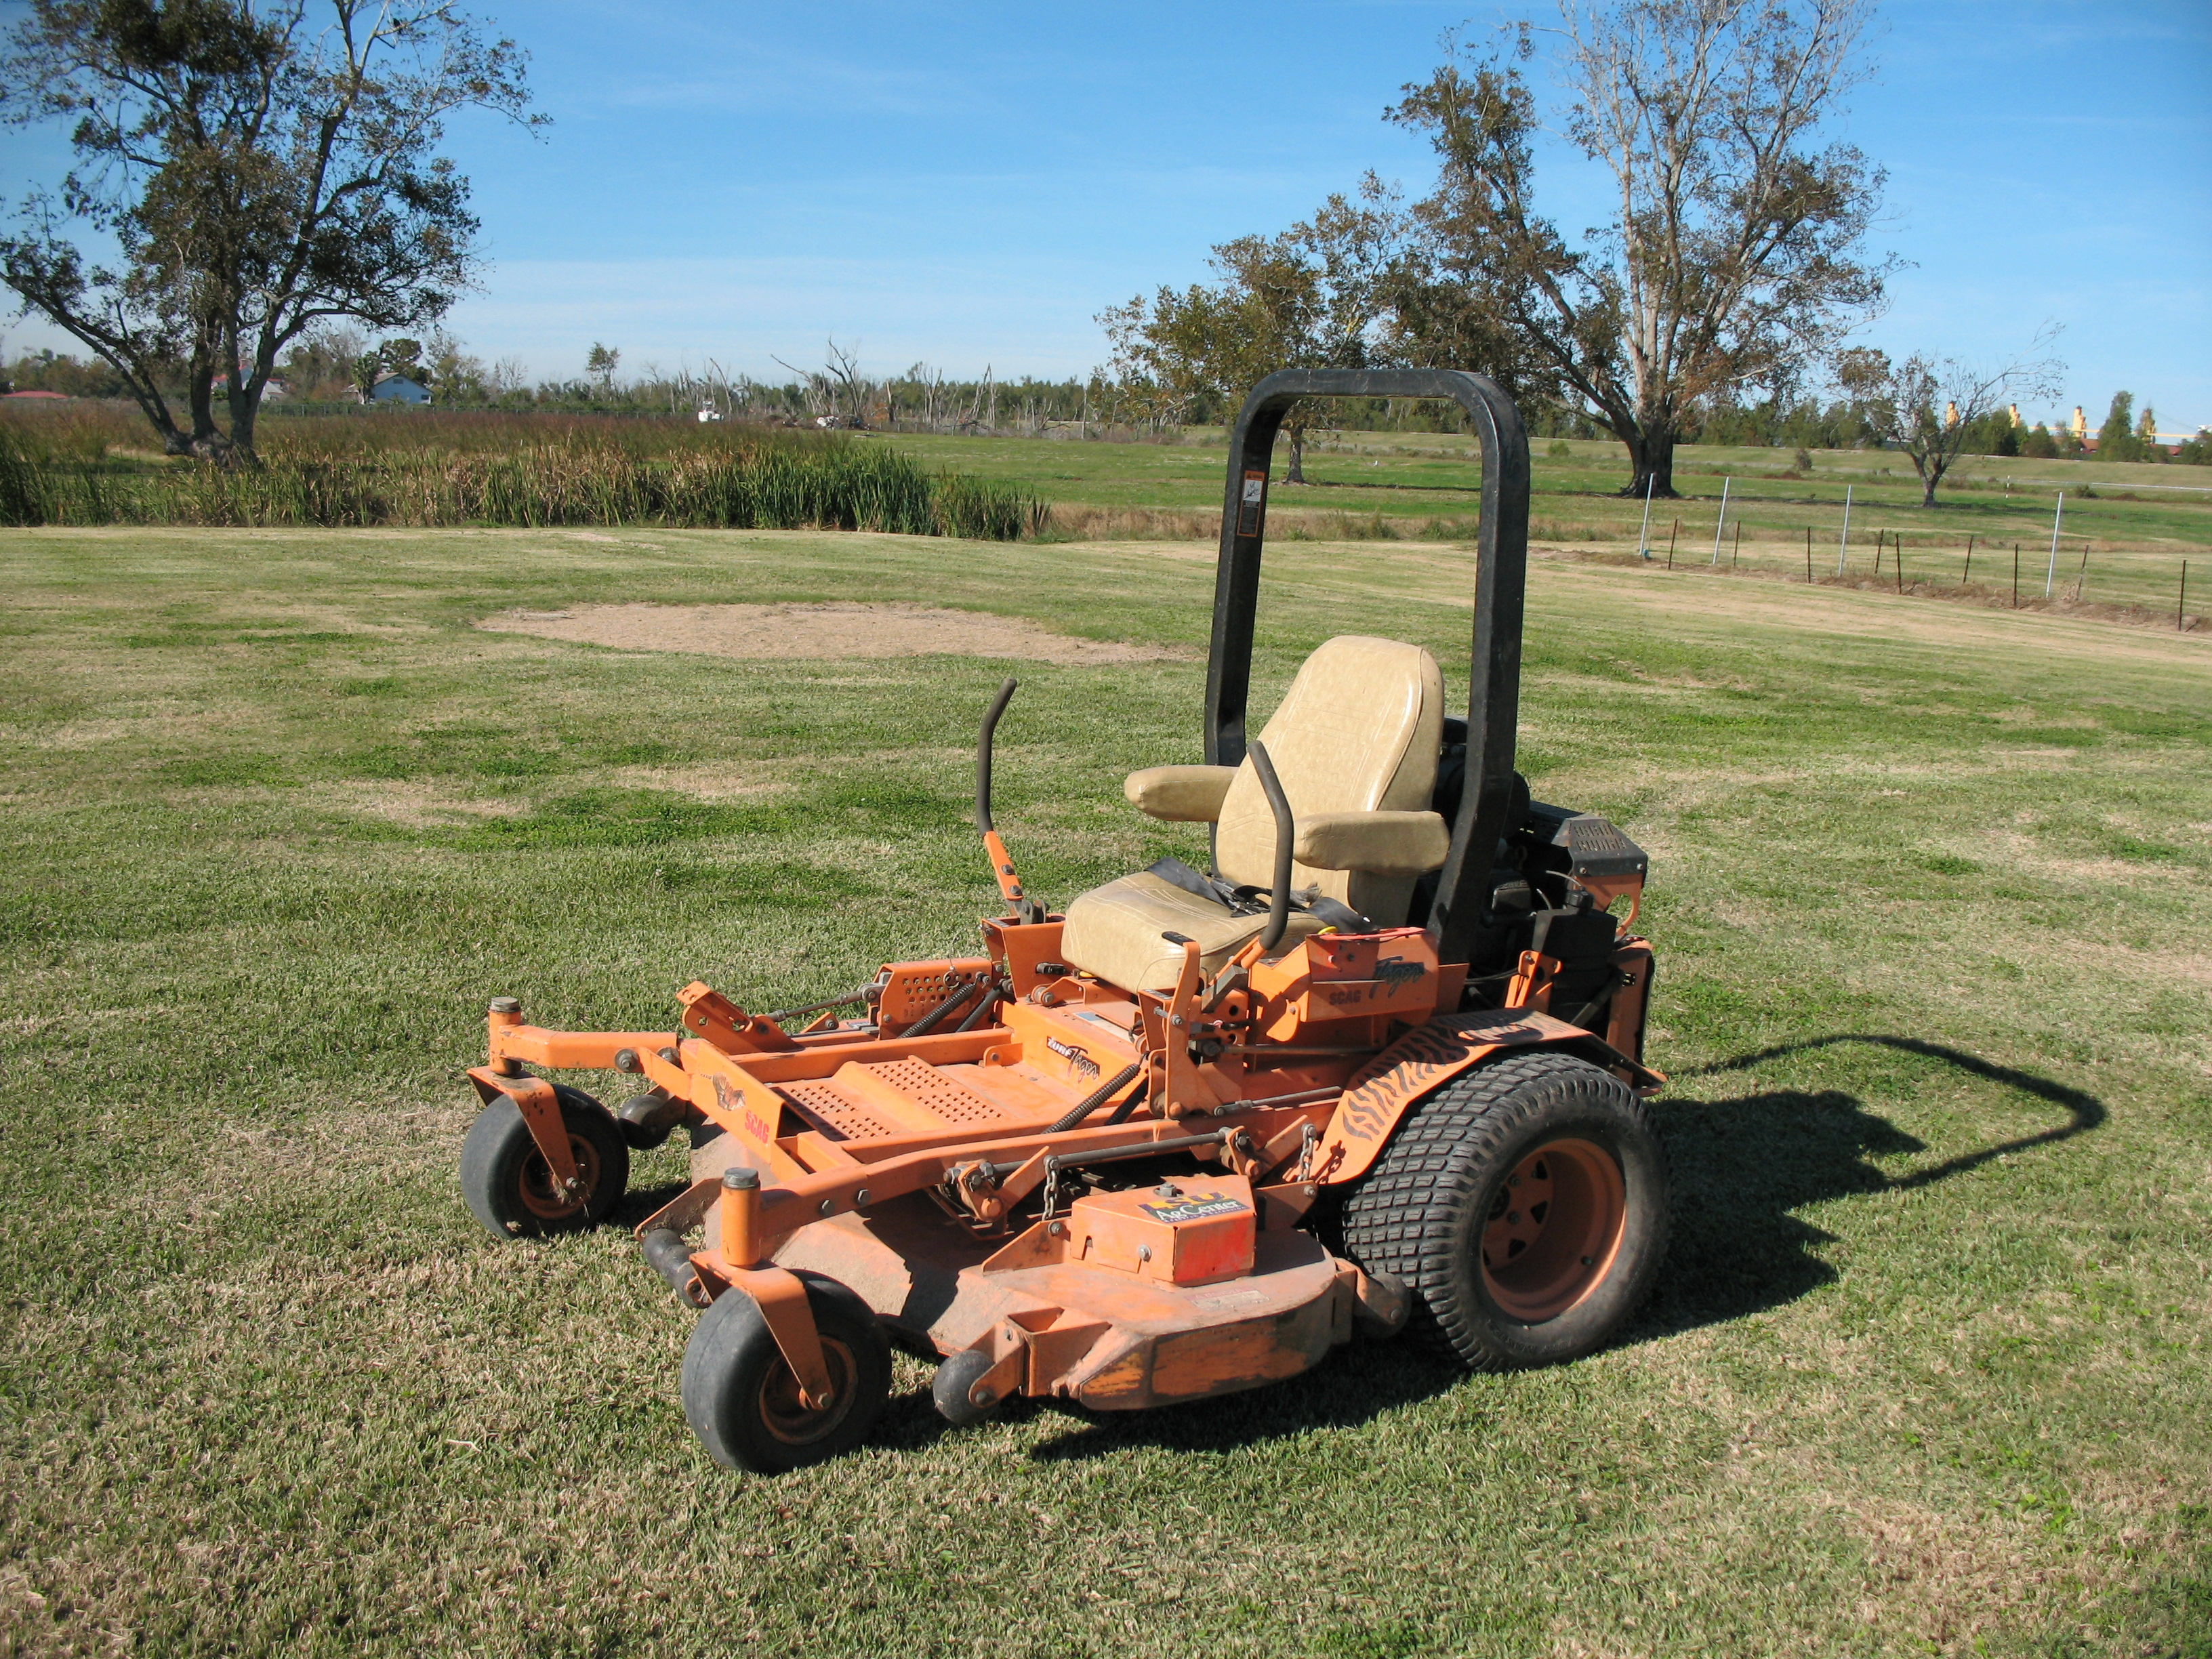 ZTR mower with ROPS